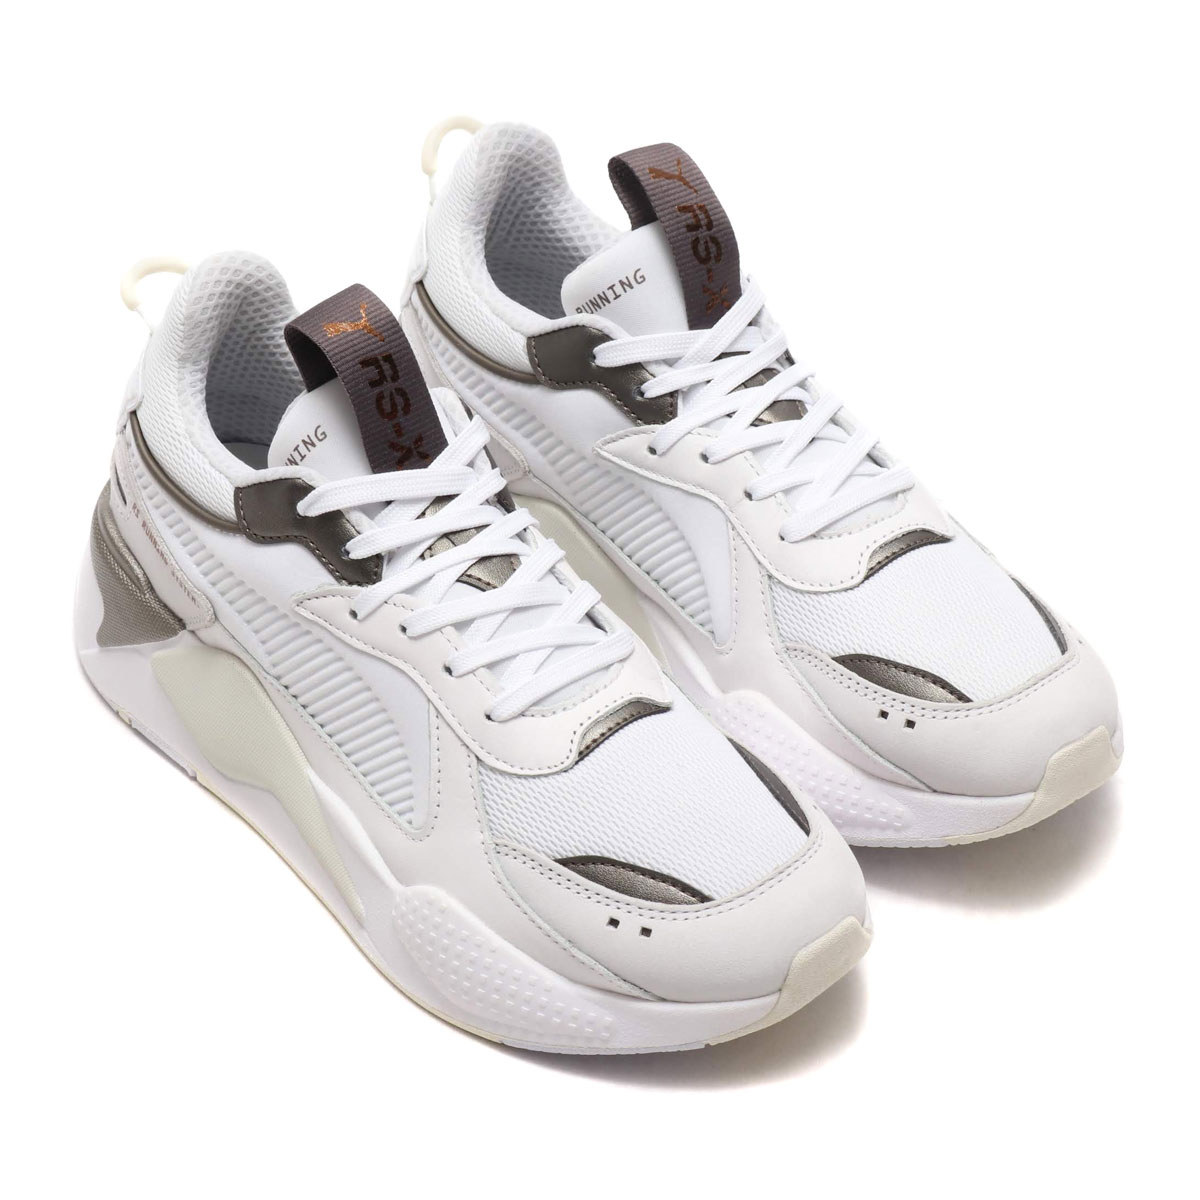 3d086af3aea Kinetics  PUMA RS-X TROPHY (PUMA WHITE-BRONZE) (Puma RS